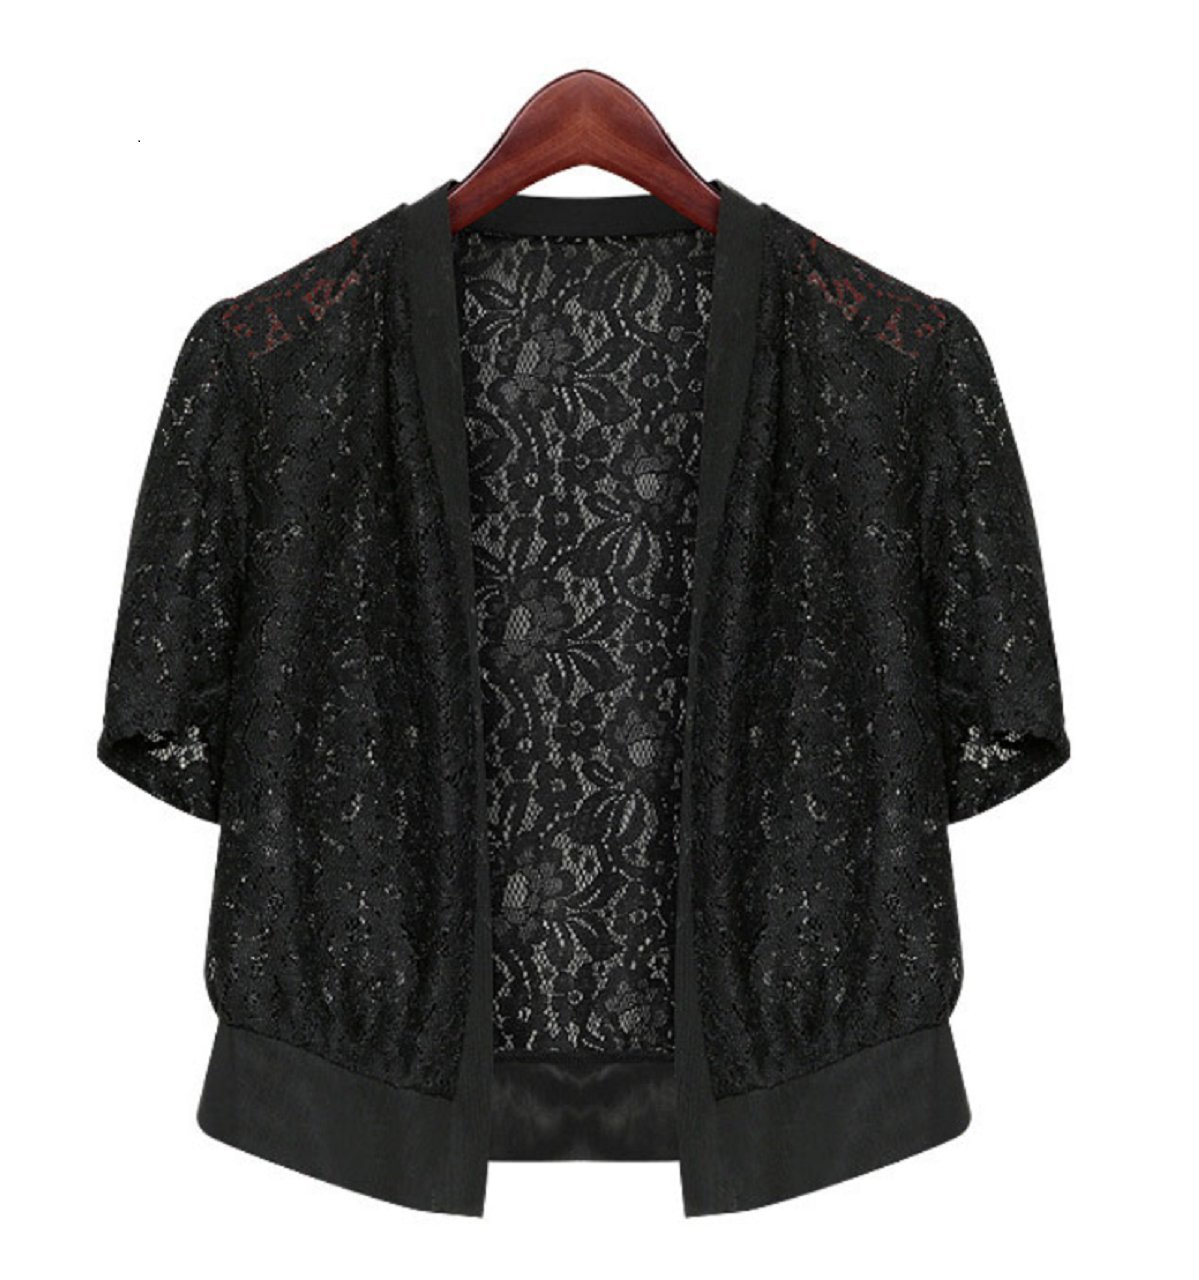 Gacchi56 Slender Size Lace Bolero Shrug Tops Short Sleeve Knit Open Cropped Cardigan Sweater for Women (See The Size Chart) (2XL)